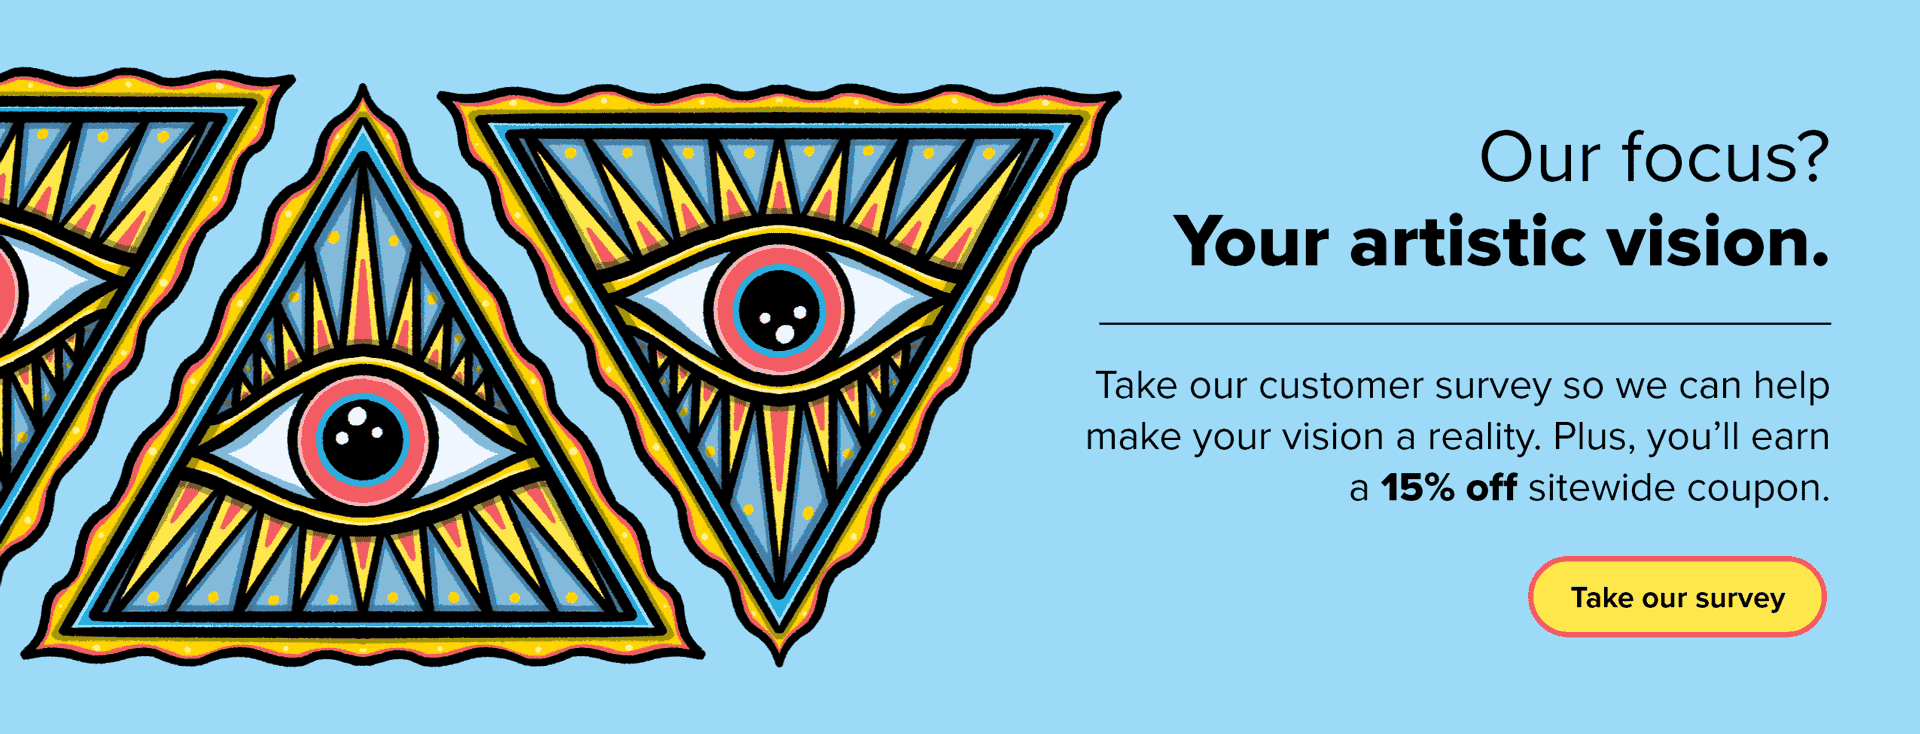 Illustration of an eye within a pyramid with the text Our focus? Your artistic vision. Take our customer survey so we can help make your vision a reality. Plus you'll earn a 15 percent off sitewide coupon. Take our survey.